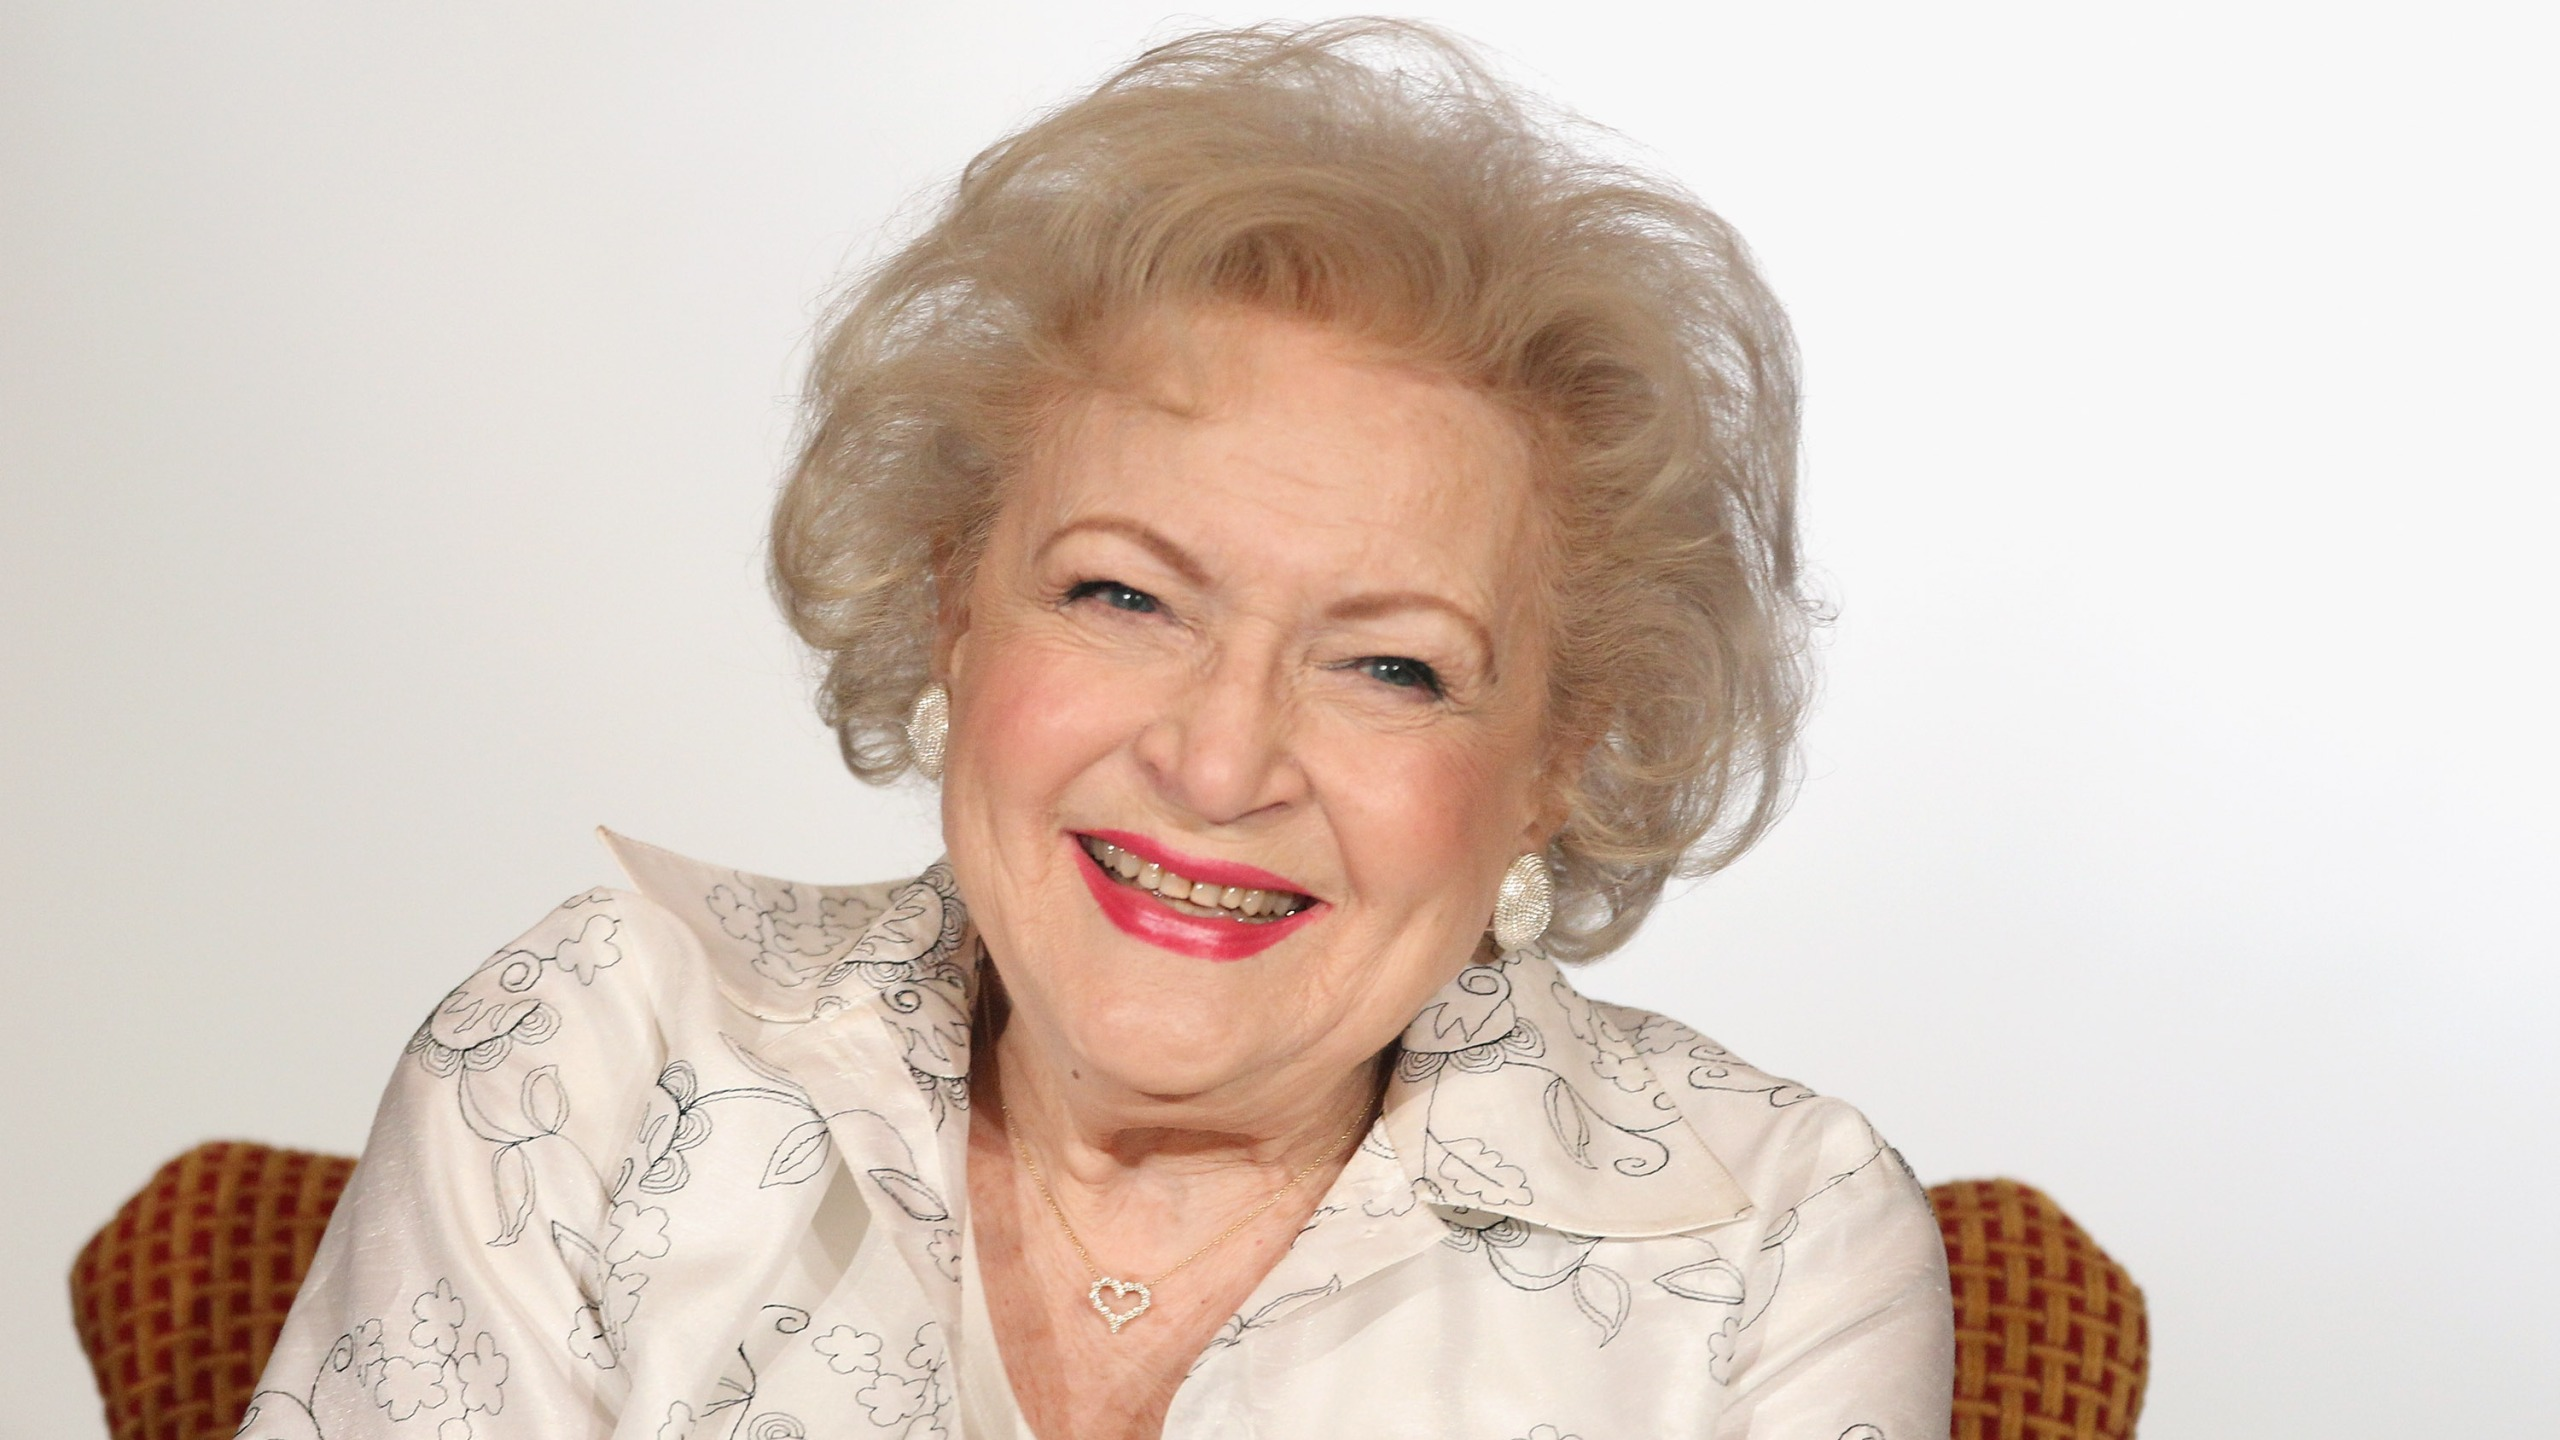 """Betty White speaks onstage during the Informal Session: Betty White's Off Their Rockers"""" panel during the NBCUniversal portion of the 2012 Winter TCA Tour (Photo by Frederick M. Brown/Getty Images)"""